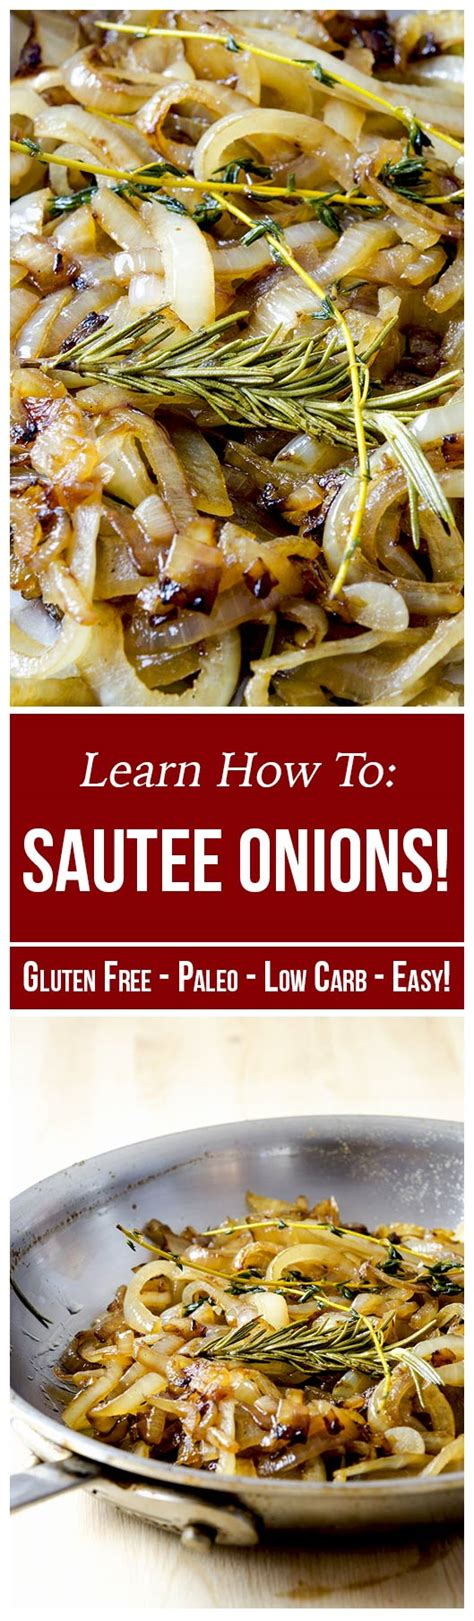 how to saute onions easily quickly perfect everytime